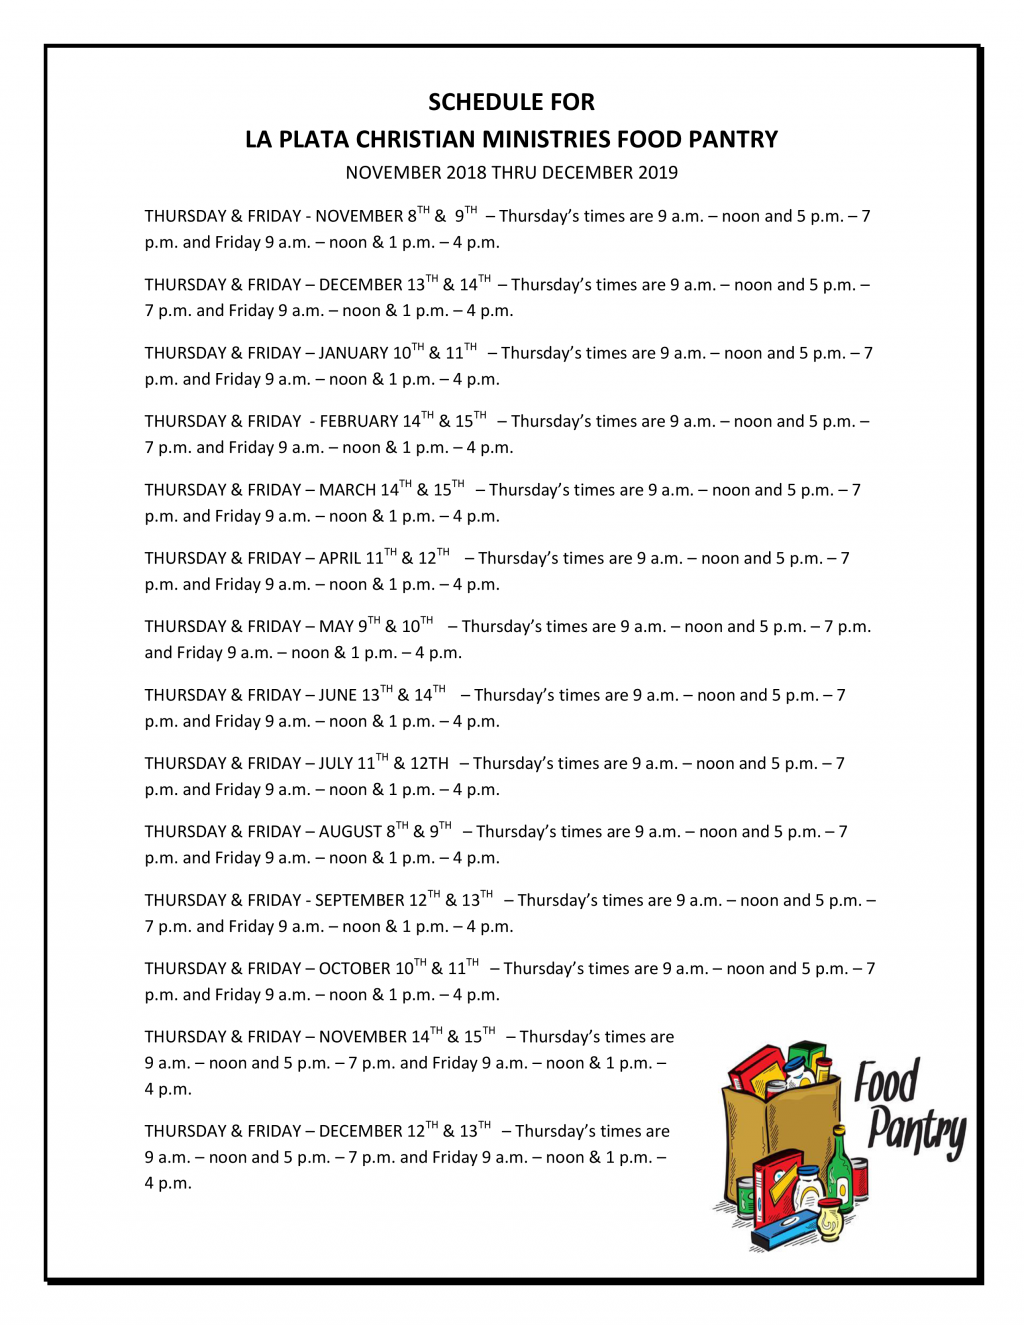 image-760415-SCHEDULE_FOR_LA_PLATA_CHRISTIAN_MINISTRIES_FOOD_PANTRY.w640.png